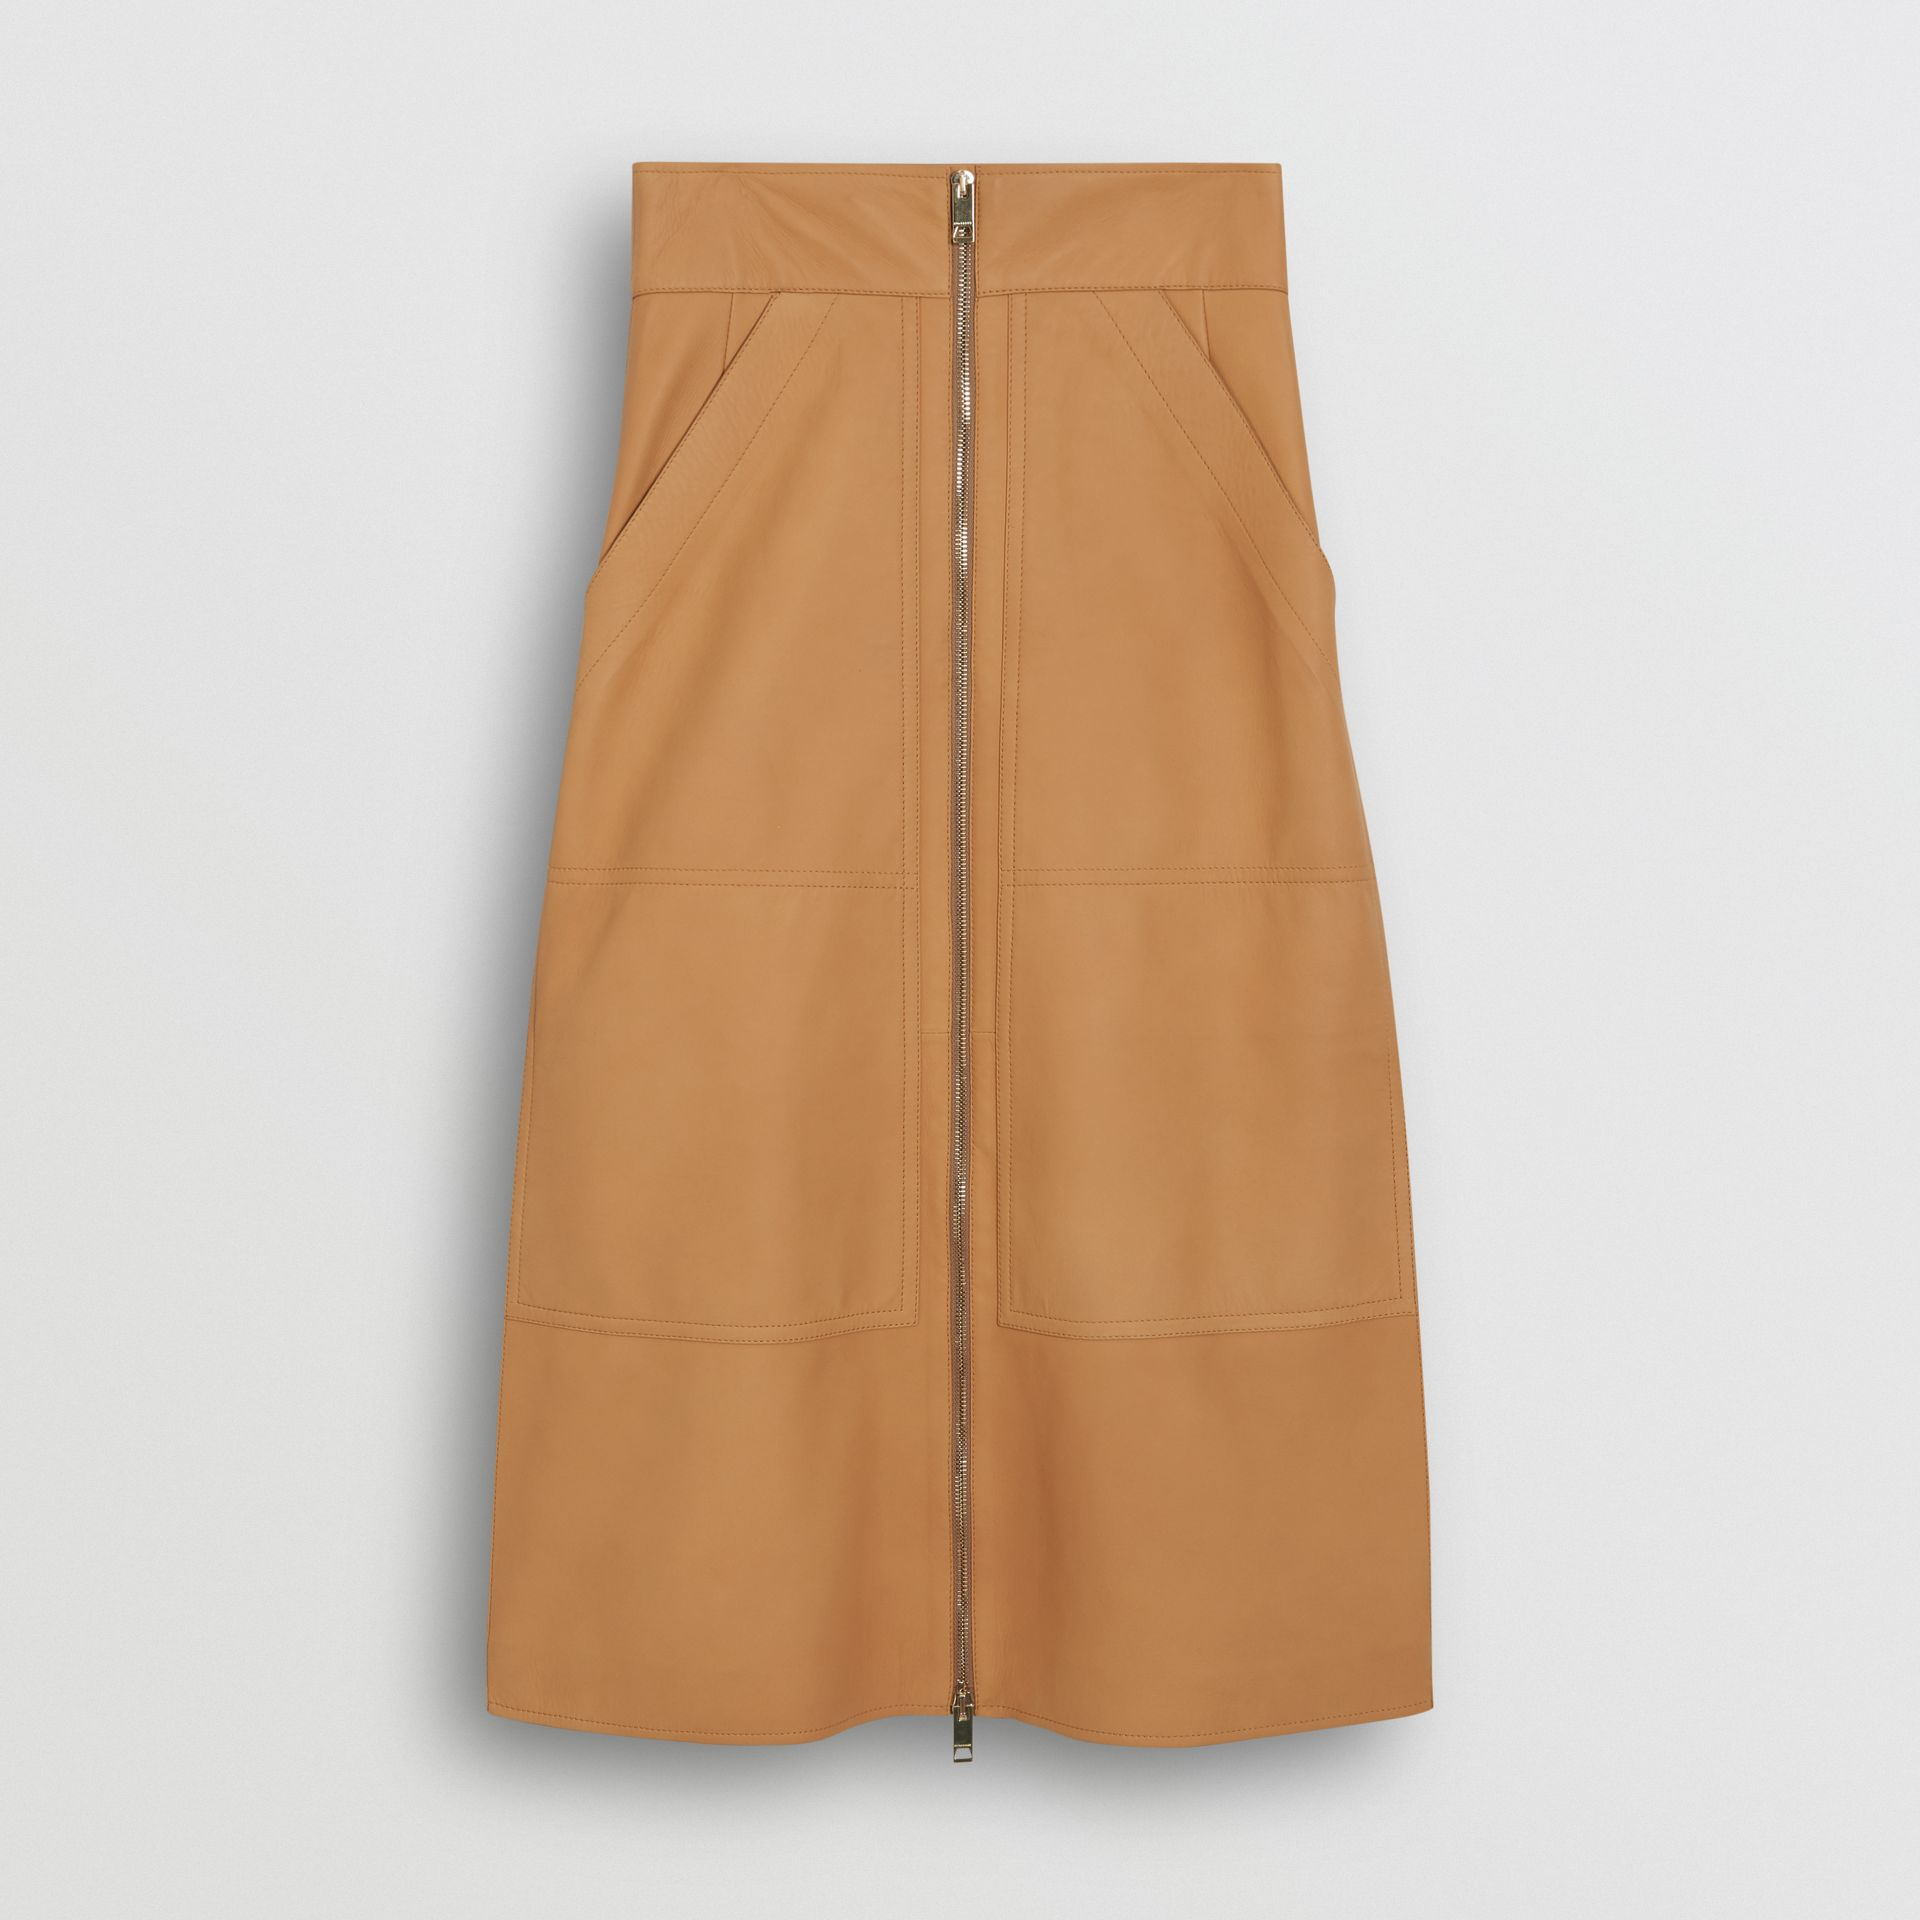 Lambskin High-waisted Skirt in Caramel - Women | Burberry United Kingdom - gallery image 3